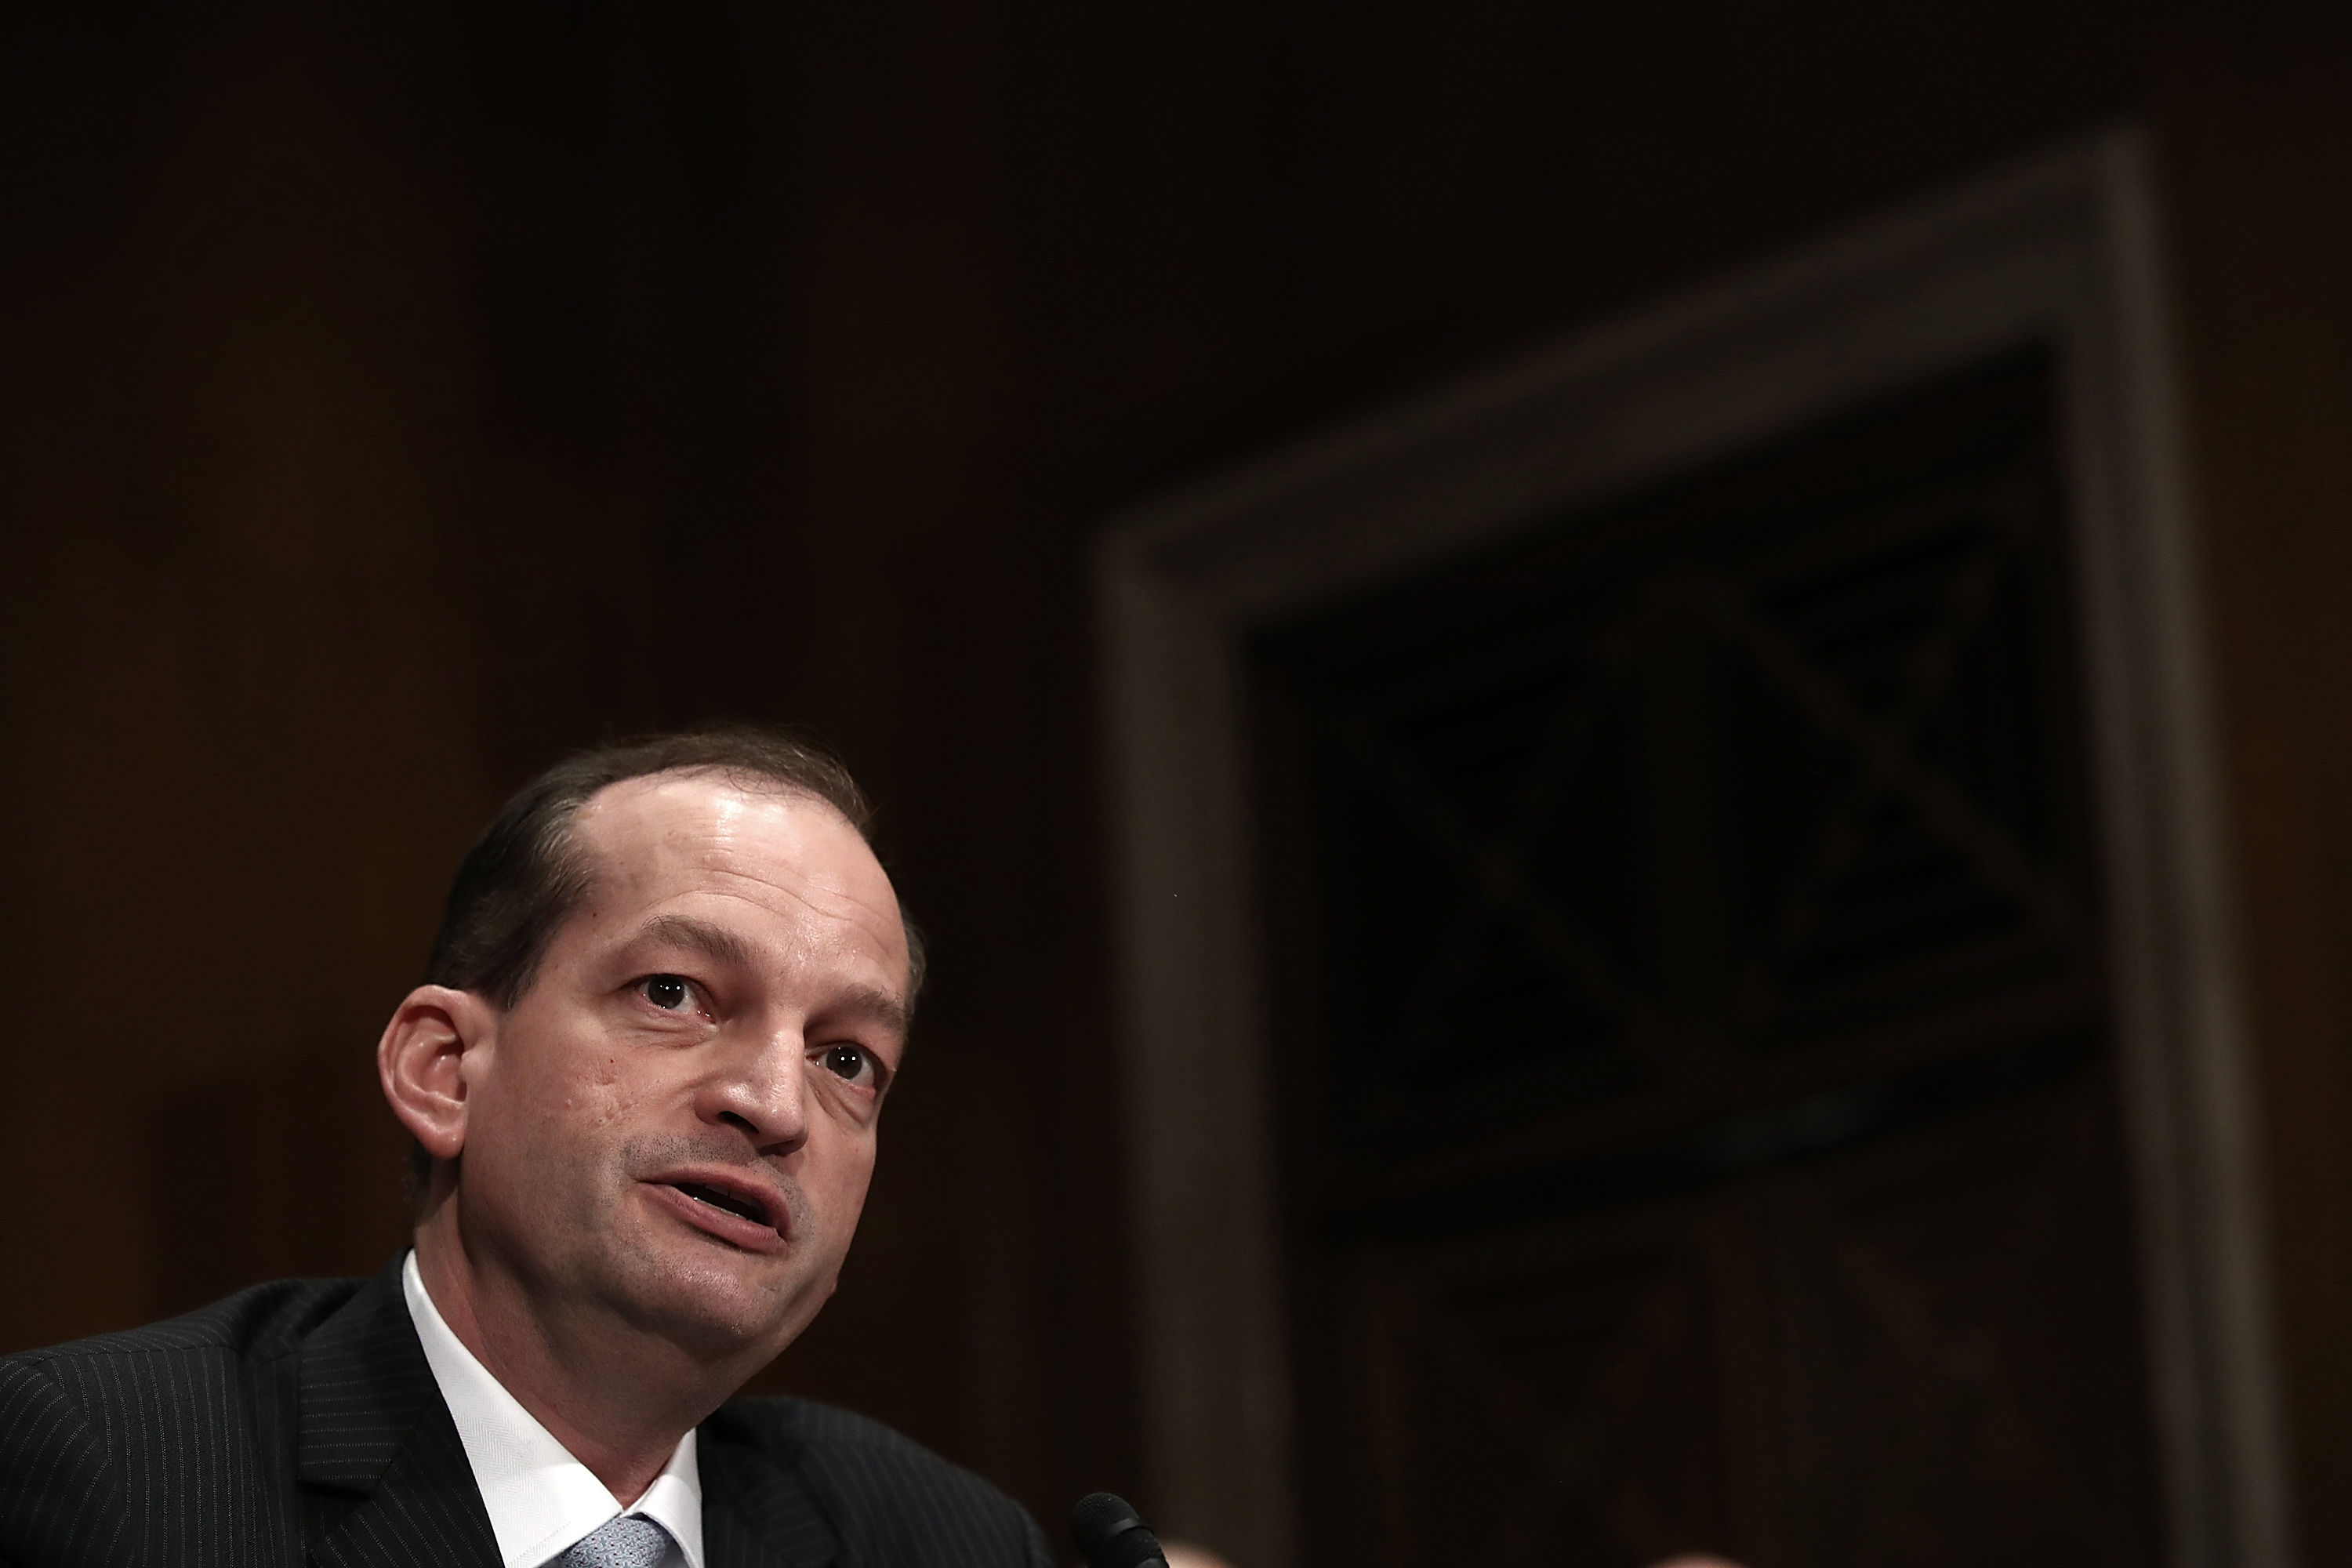 Senate Holds Confirmation Hearing For Alex Acosta For Secretary Of Labor